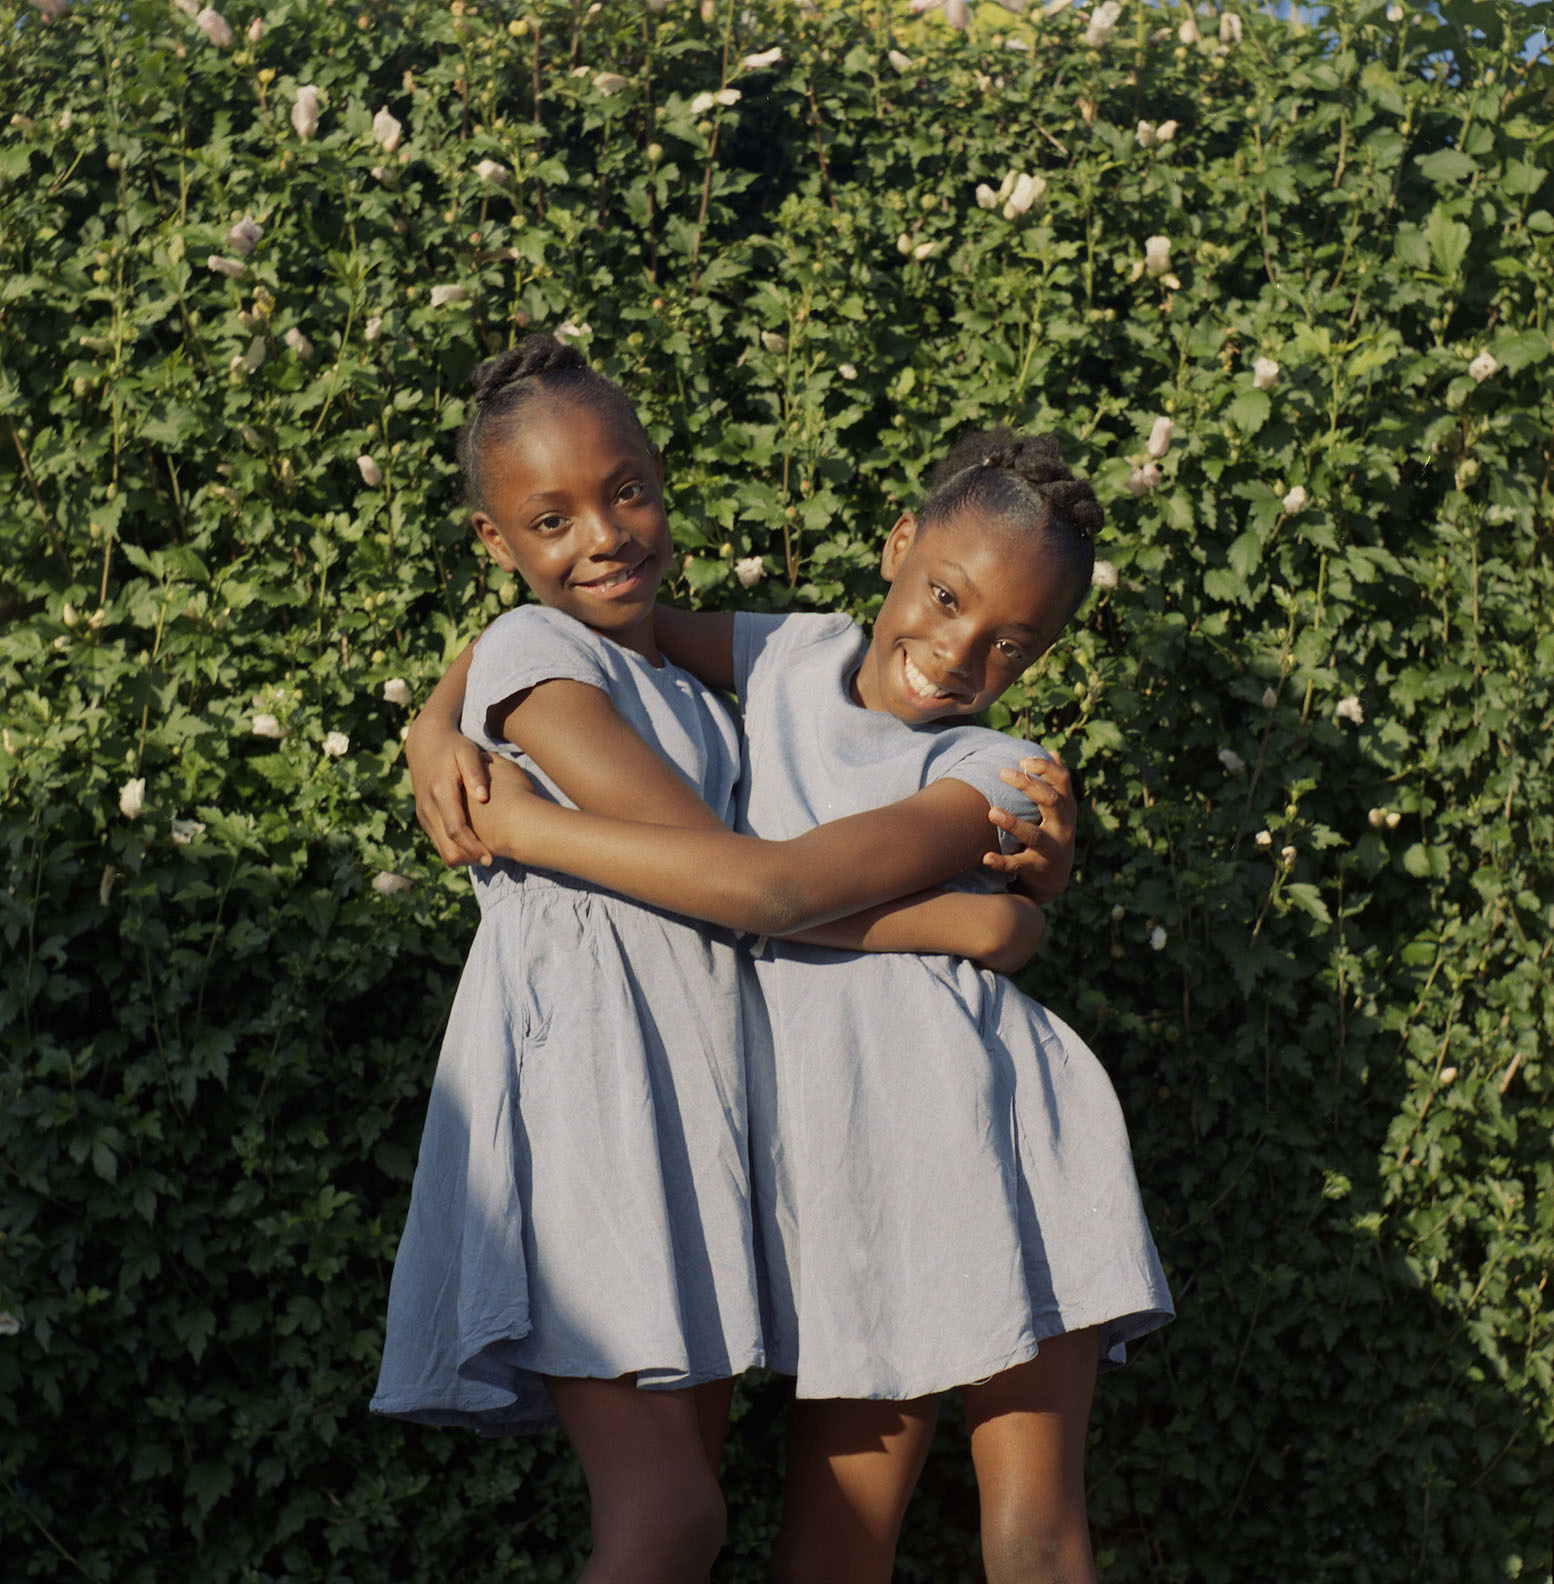 My favorite part about the entire process was seeing how excited the twins i photographed were about this project